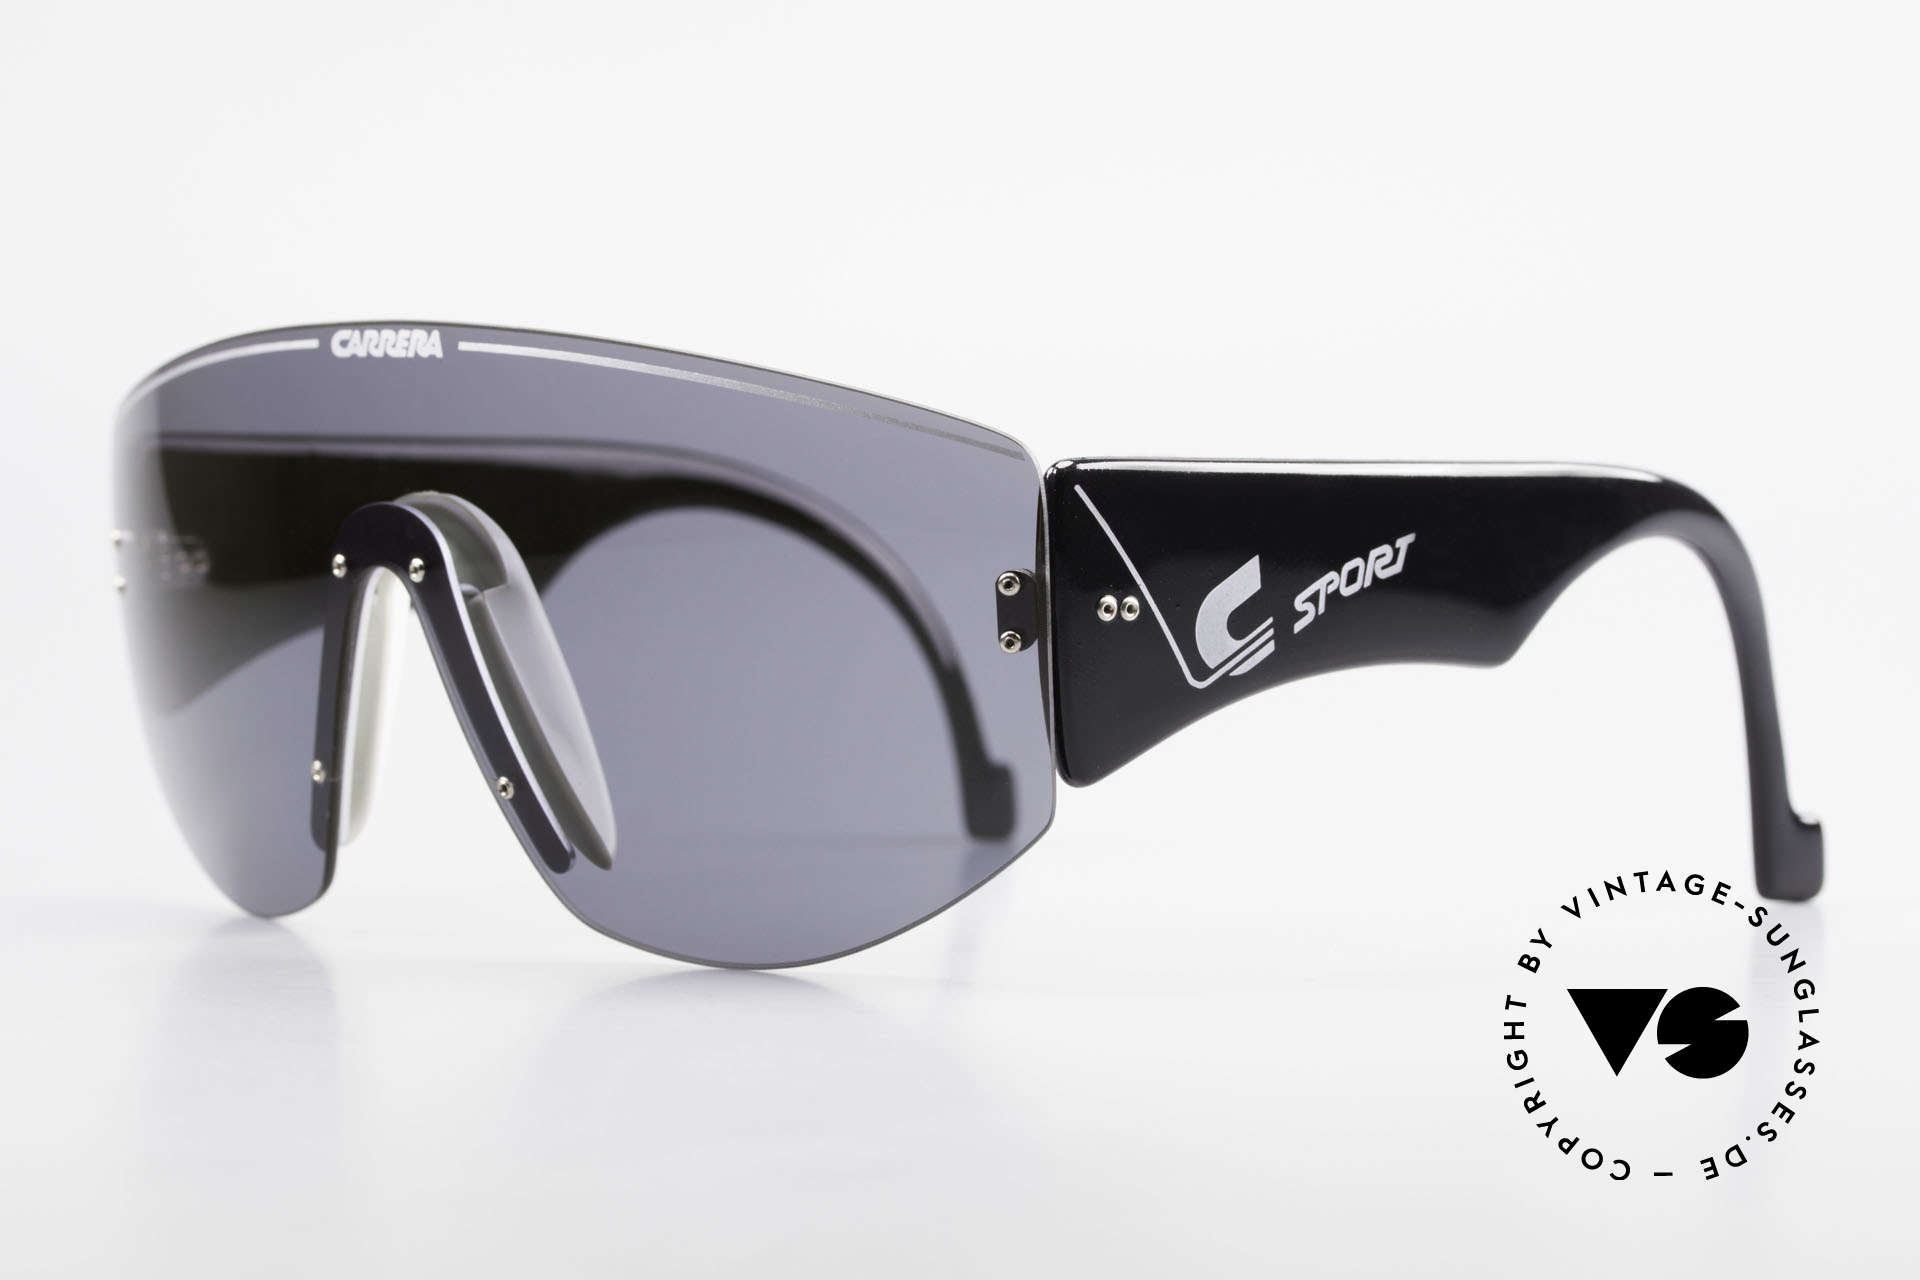 Carrera 5414 90's Sunglasses Sports Shades, cool SHADES design ... also wearable in everyday life, Made for Men